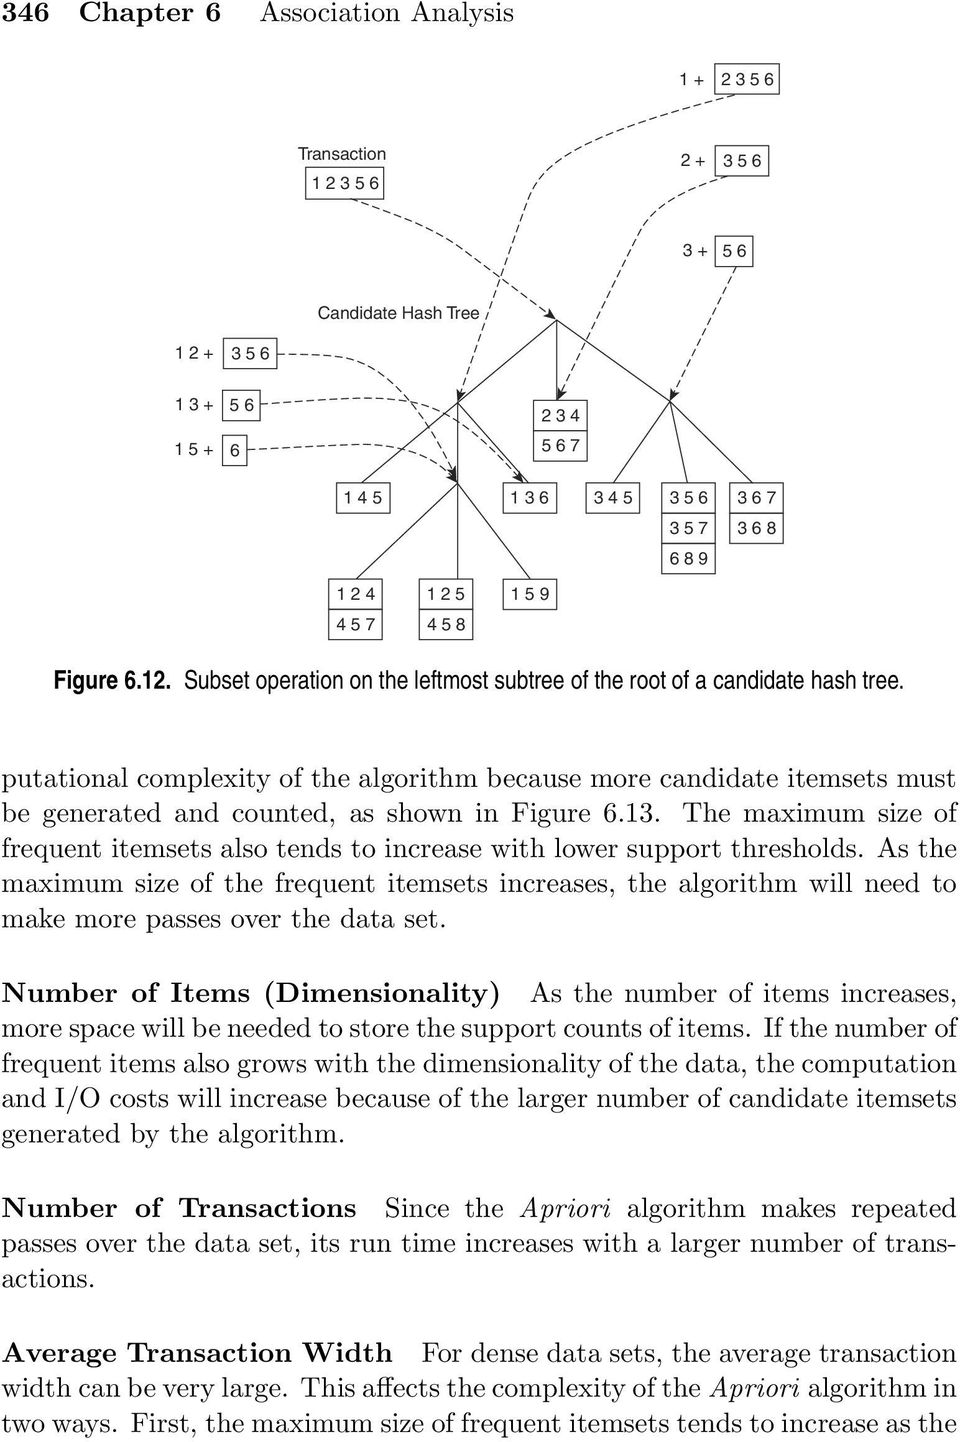 putational complexity of the algorithm because more candidate itemsets must be generated and counted, as shown in Figure 6.13.